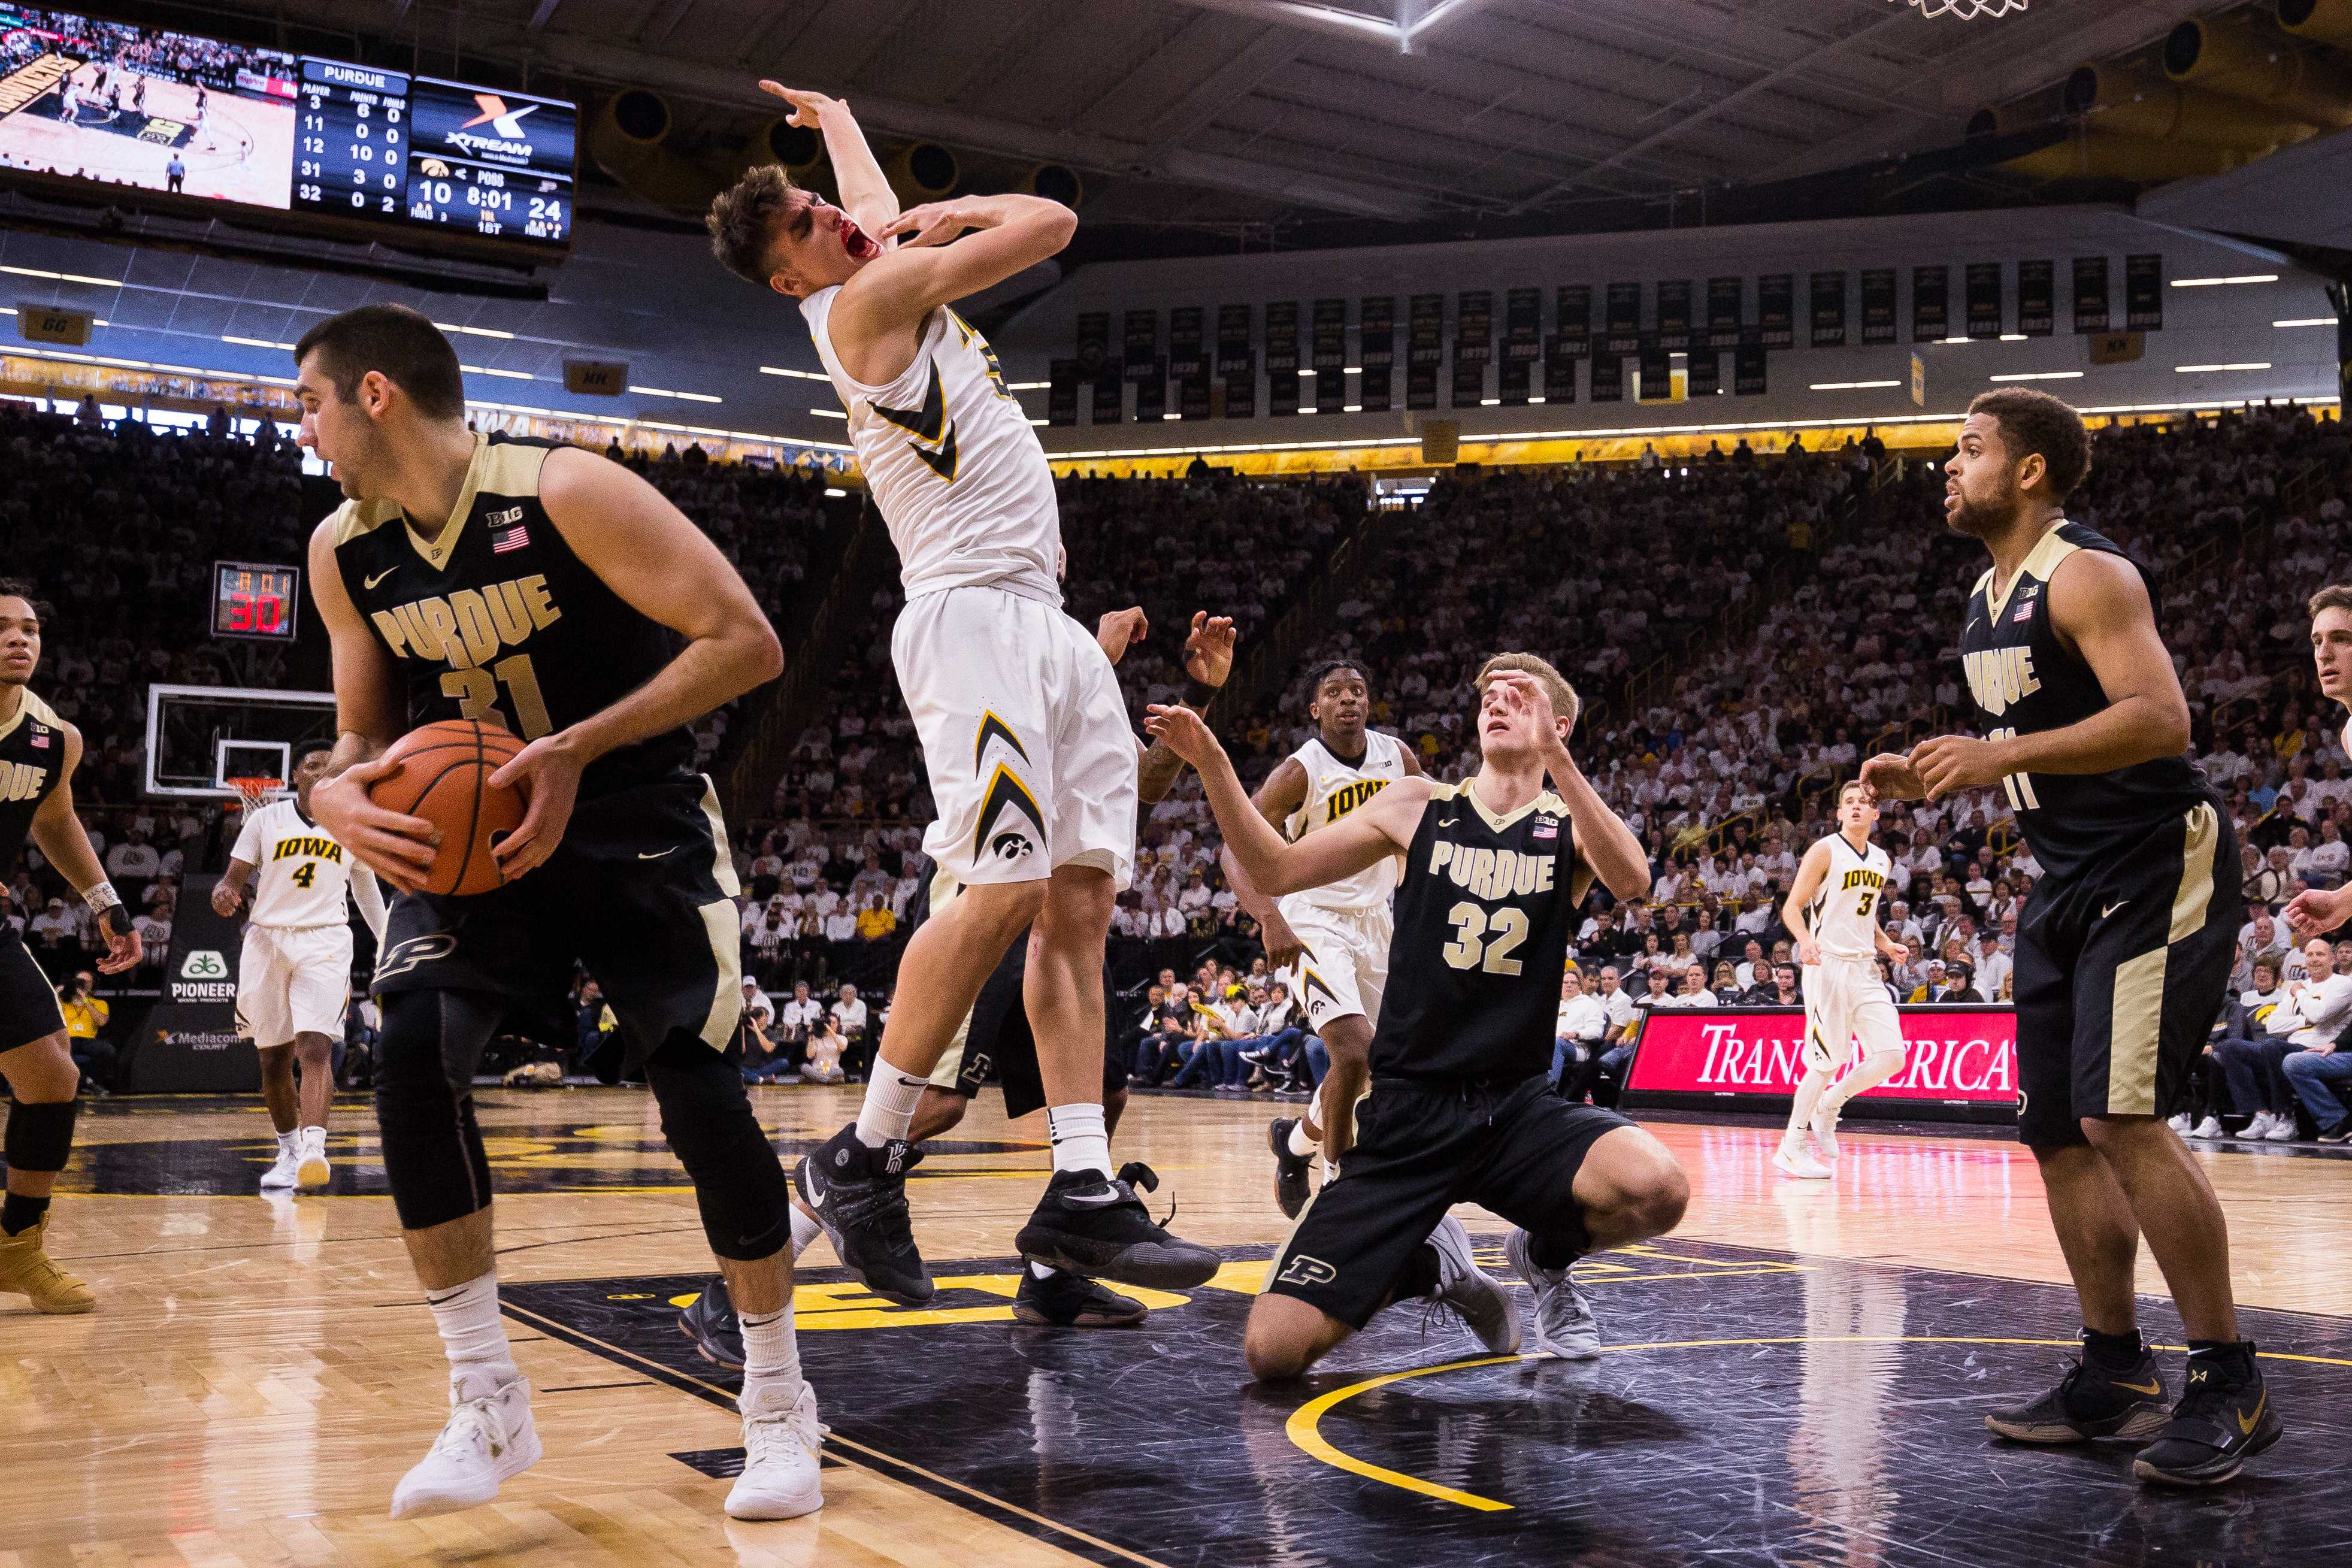 Iowa forward Luka Garza comes up bloodied after fighting for a rebound during a game against Purdue University on Saturday, Jan. 20, 2018. The Boilermakers defeated the Hawkeyes 87-64. (David Harmantas/The Daily Iowan)